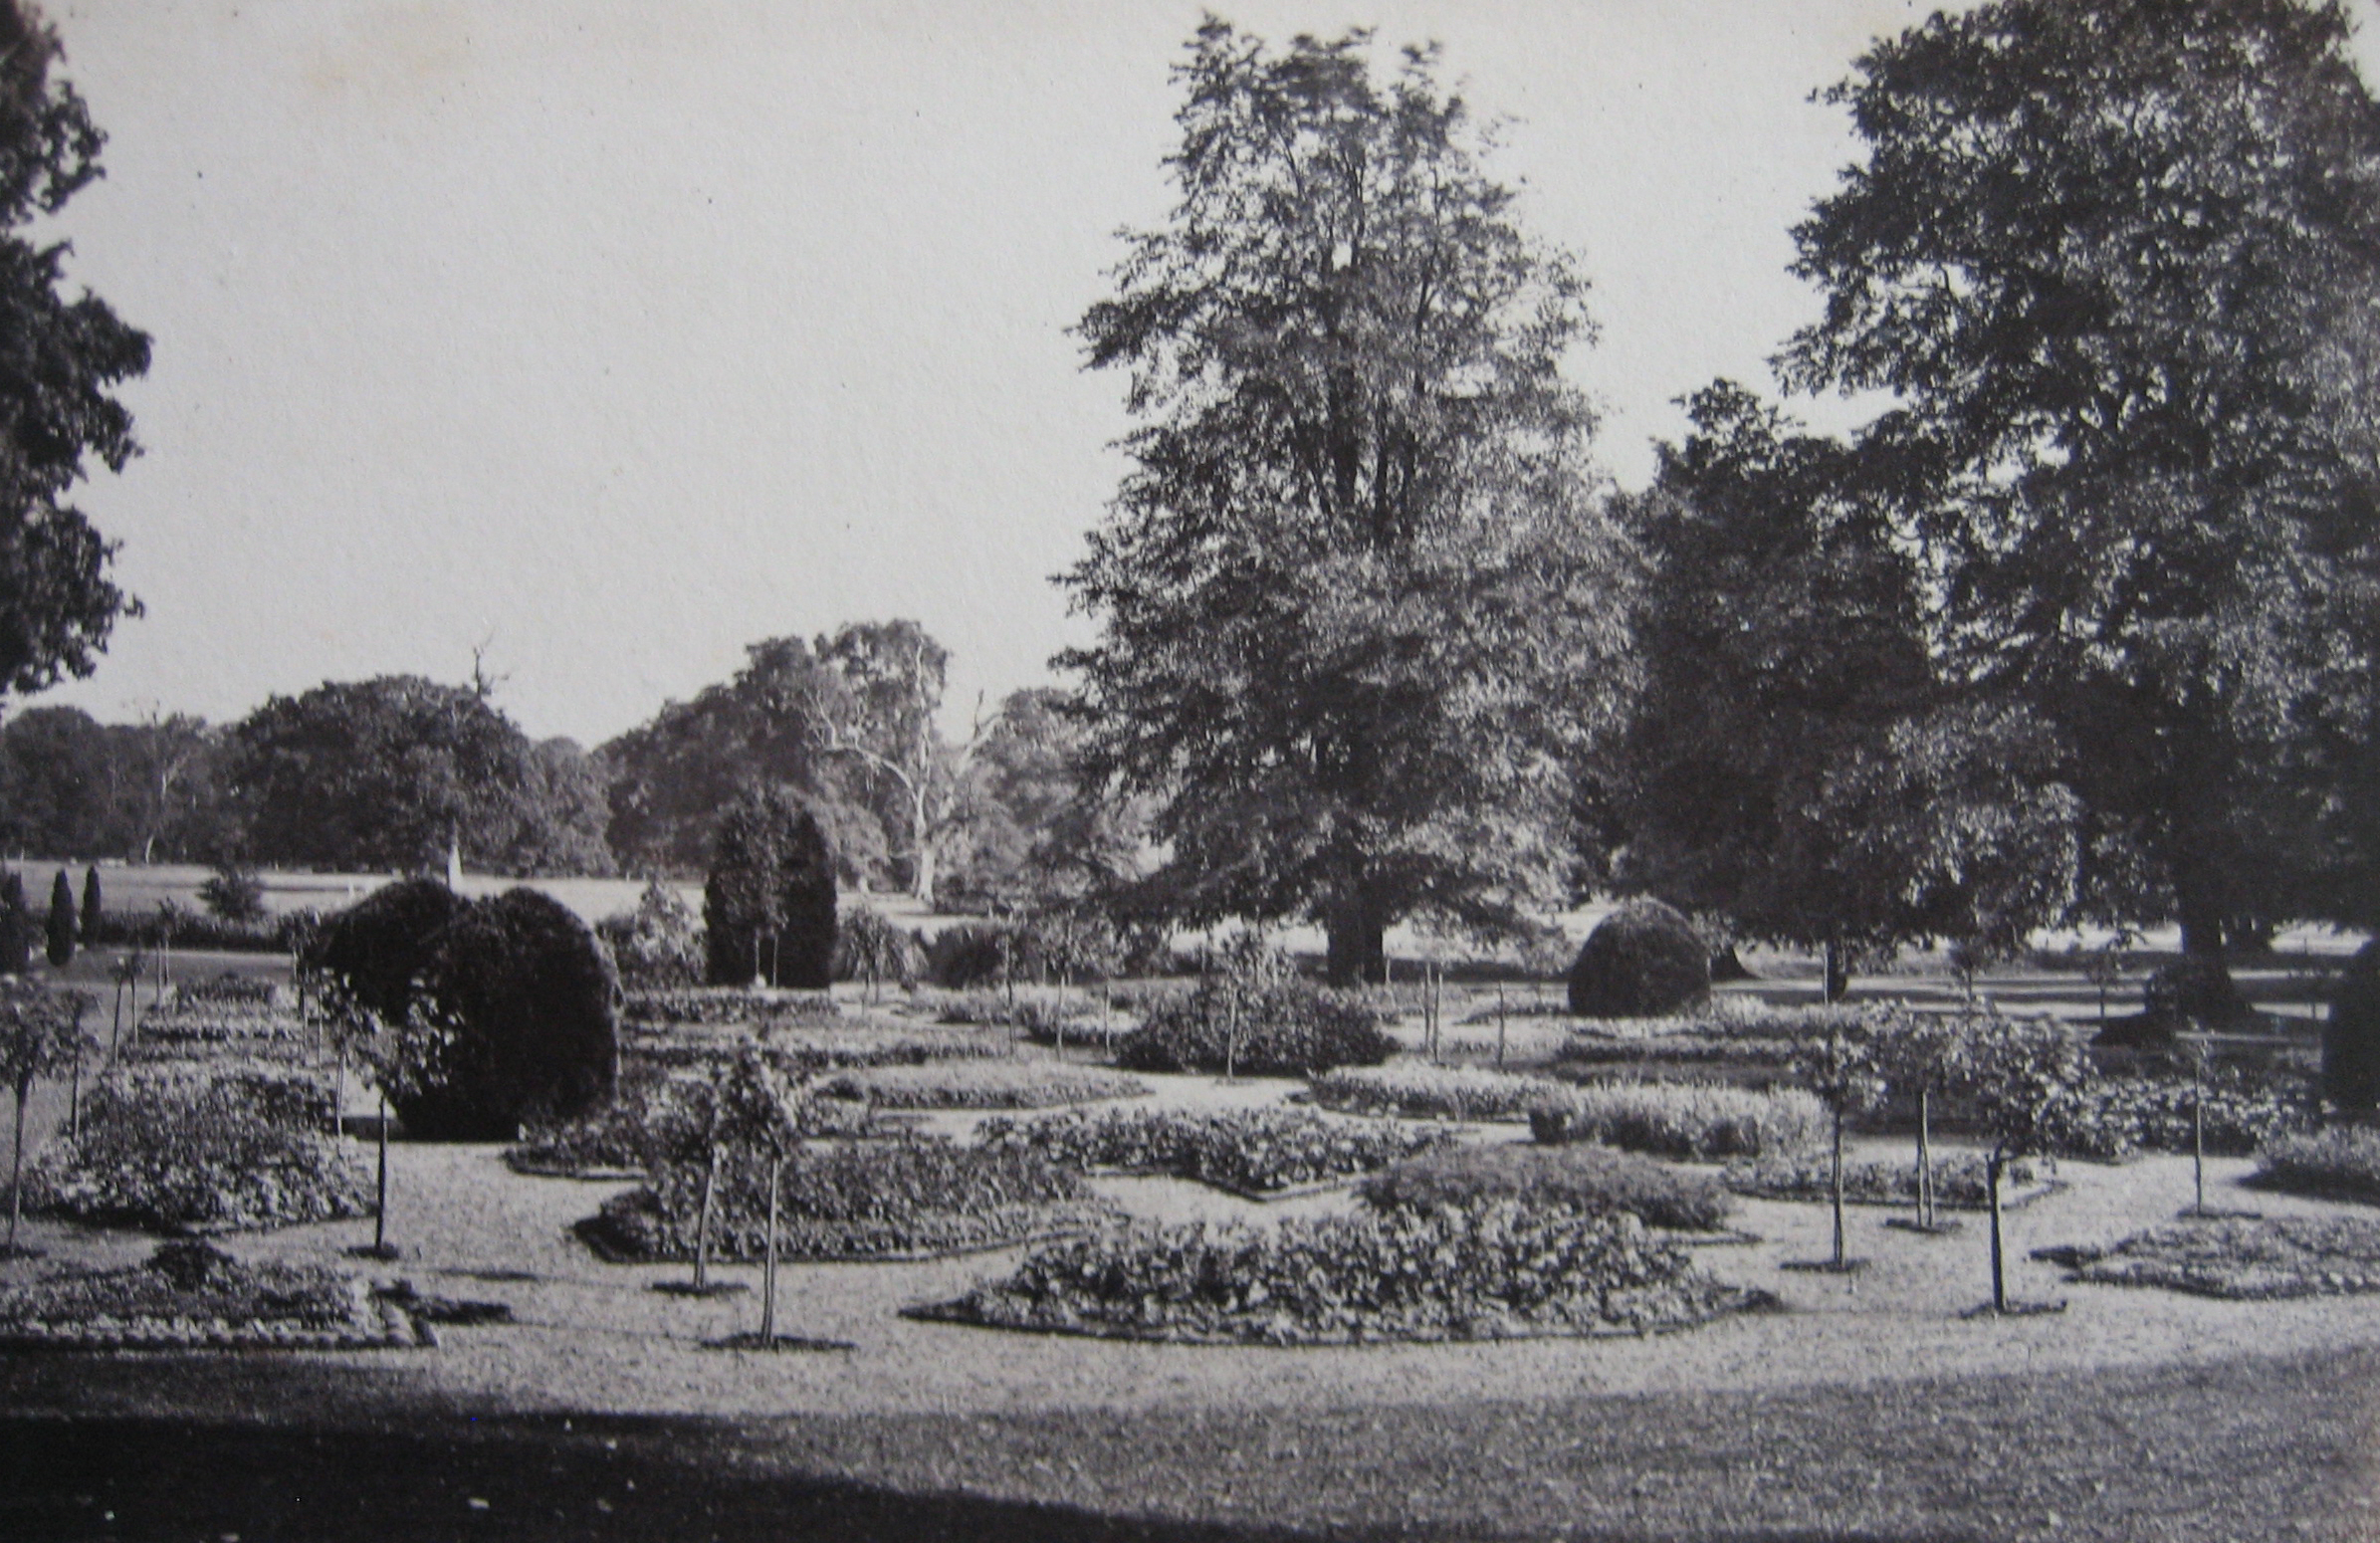 Photograph of the Flower Garden.